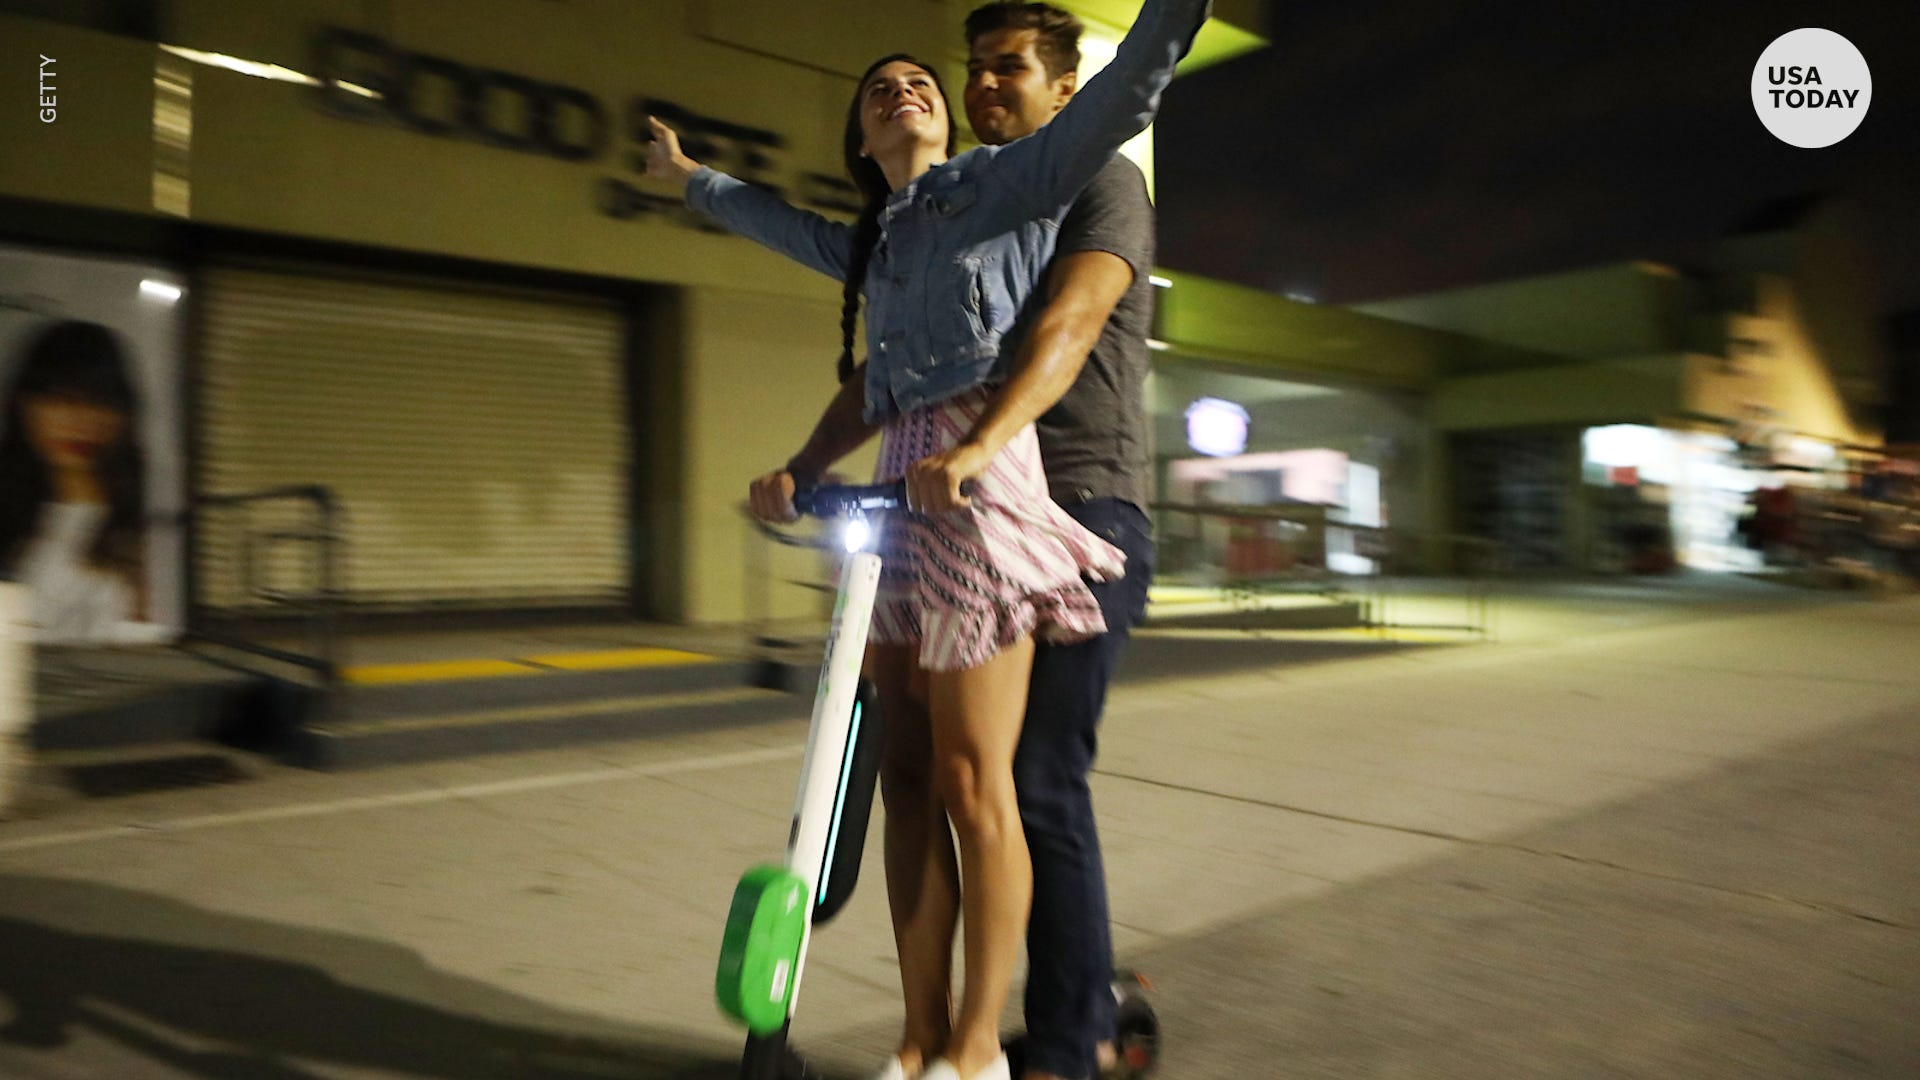 Bird Scooter Plan Grounded In Thousand Oaks City Was First To Allow Electric Scooters